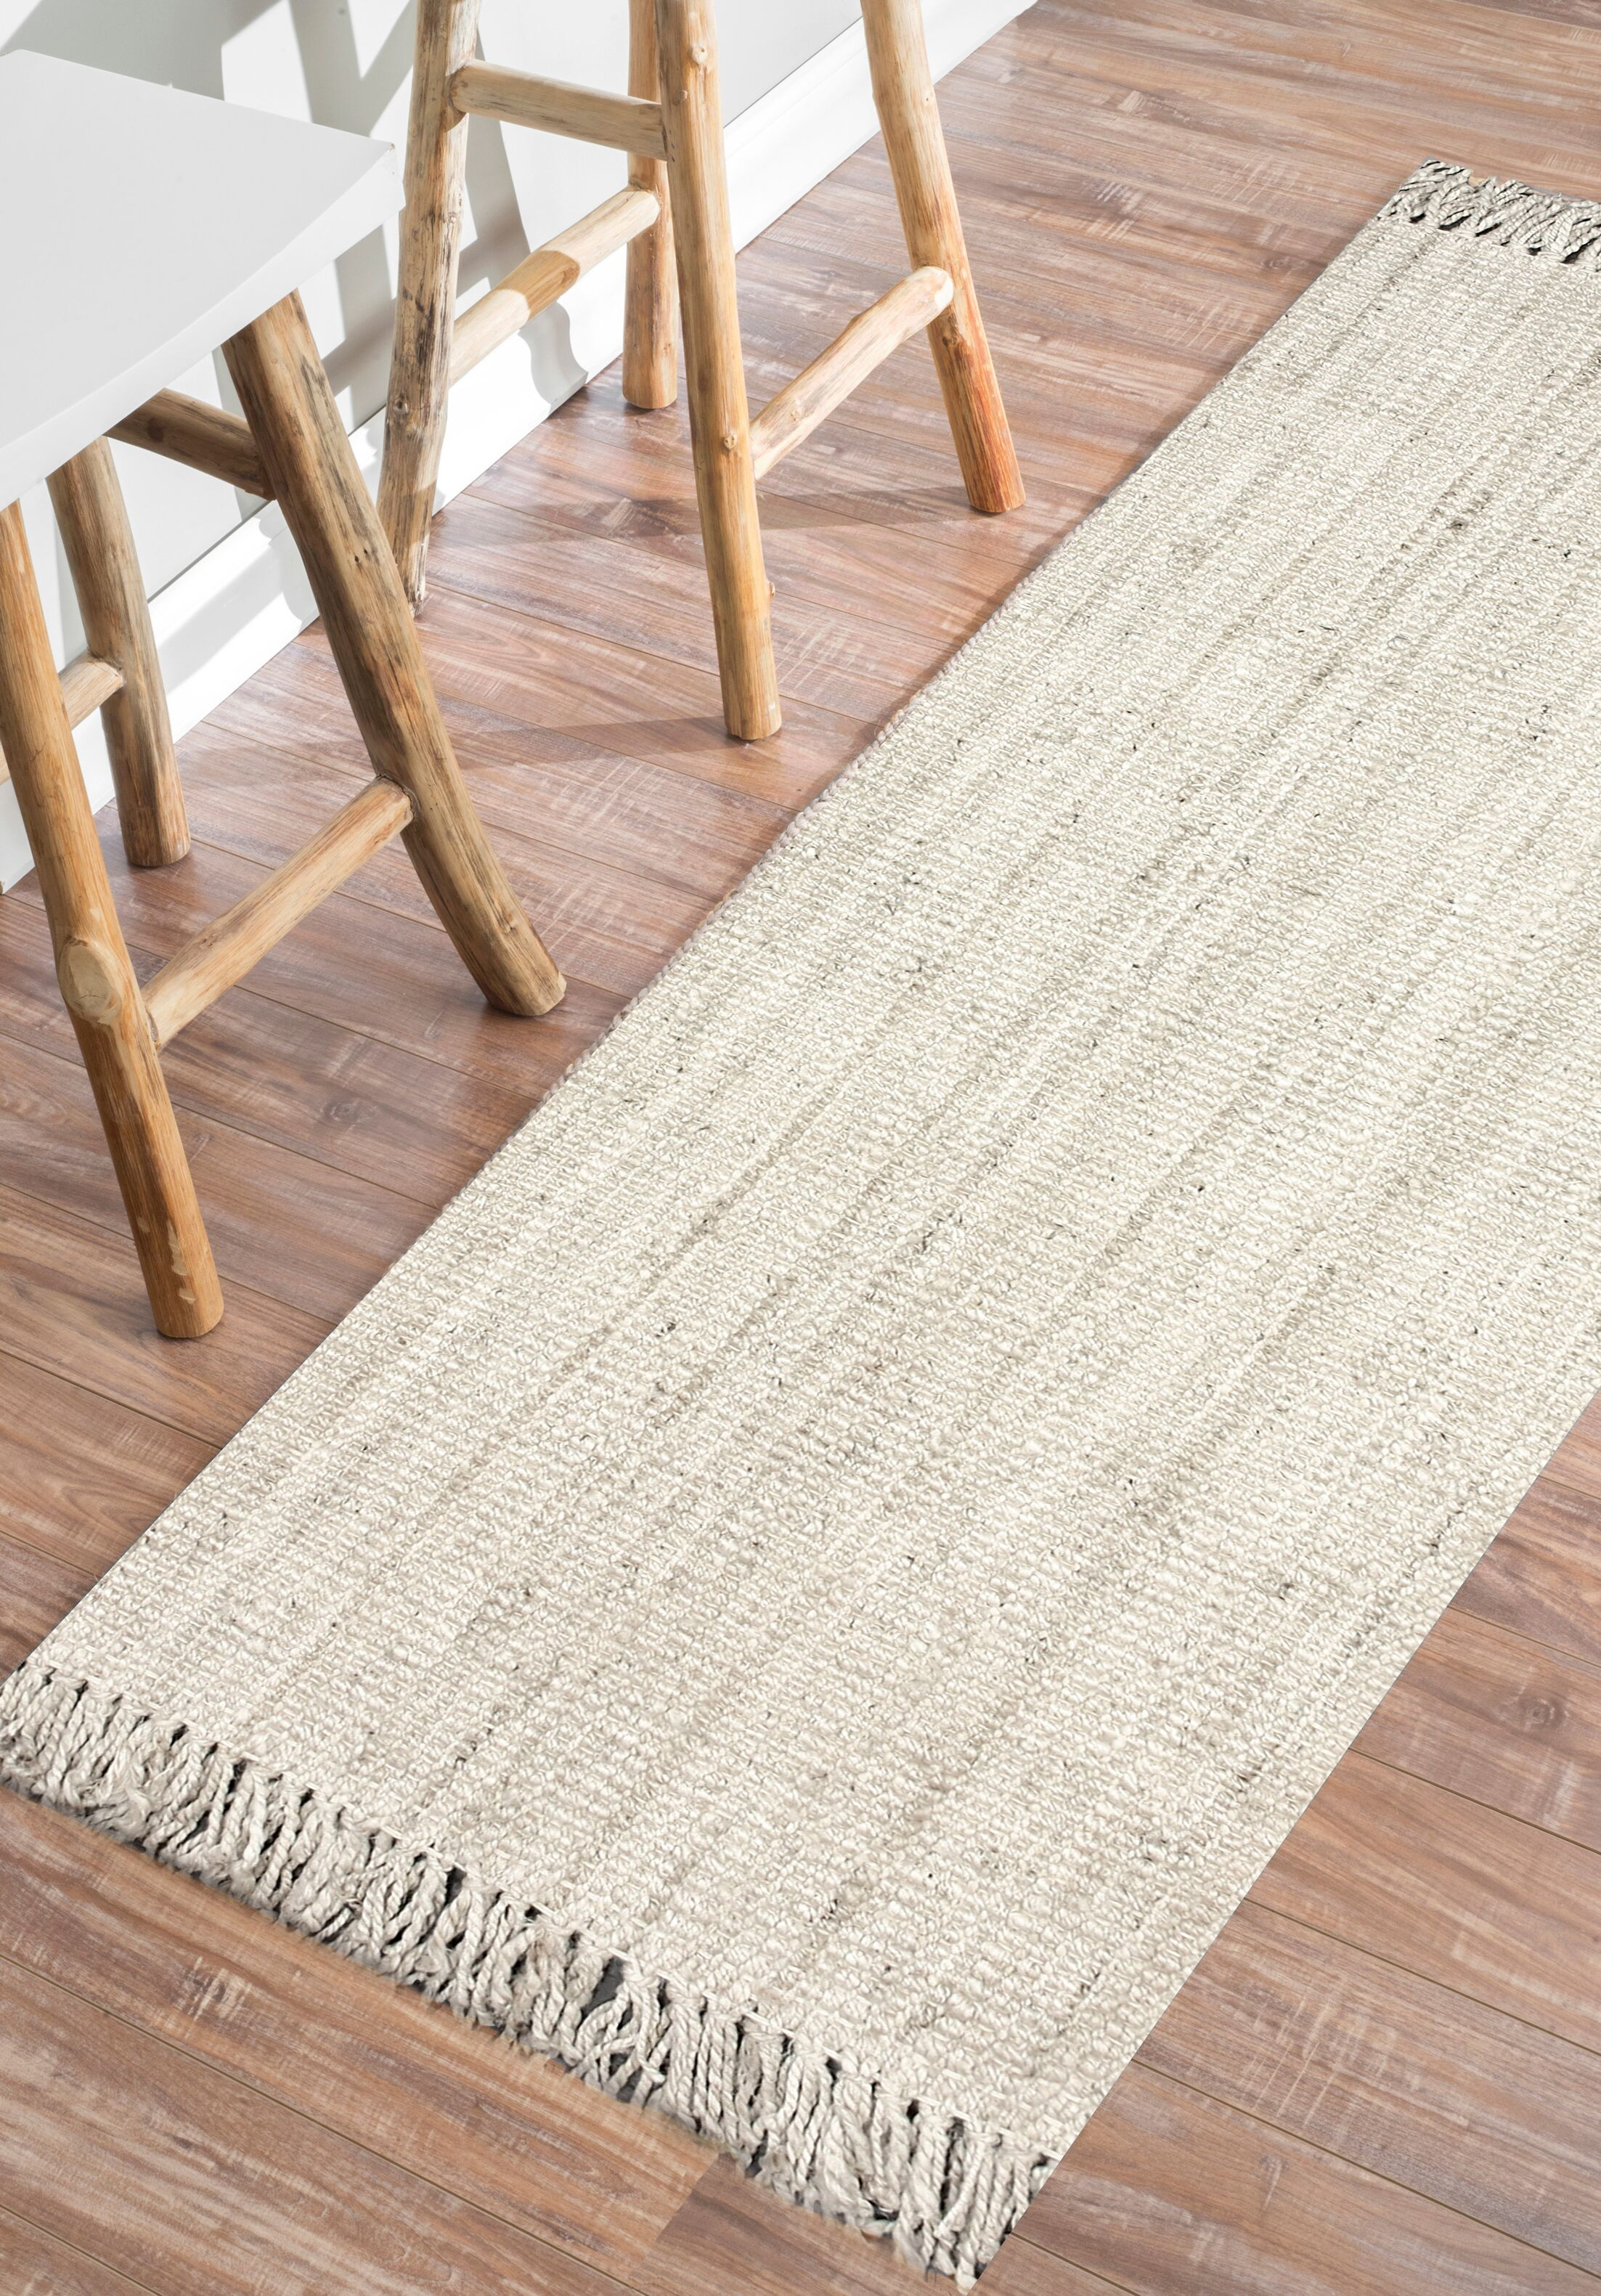 Elana Hand-Woven Bleached Ivory Area Rug Rug Size: Runner 2'6